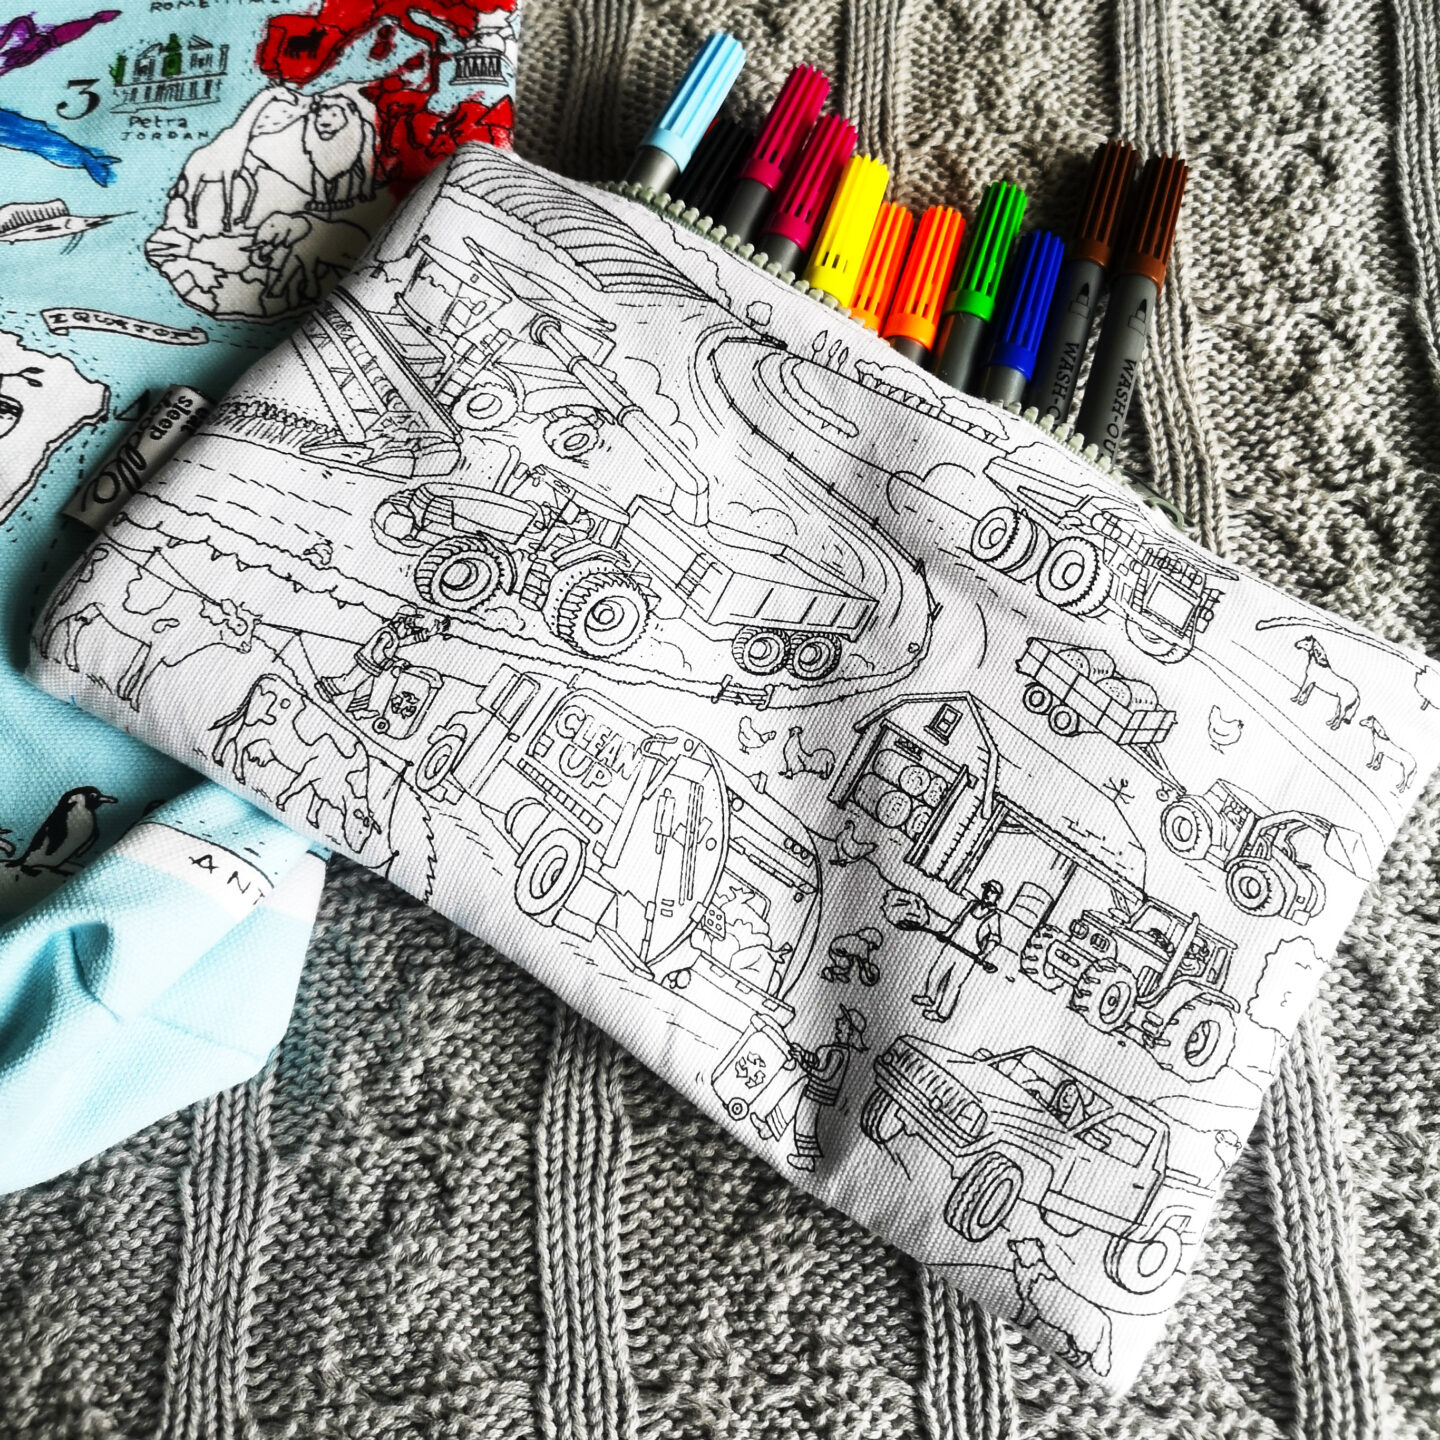 Back to School Eatsleepdoodle Set, Back To School Giveaways, Eatsleepdoodle, Doodle, Colouring Set, Textile Gifts, Colouring Fun, Kids Activity, the Frenchie Mummy, Win, Giveaway, Competition, Back to School 2021, School Stationery, Pencil Case